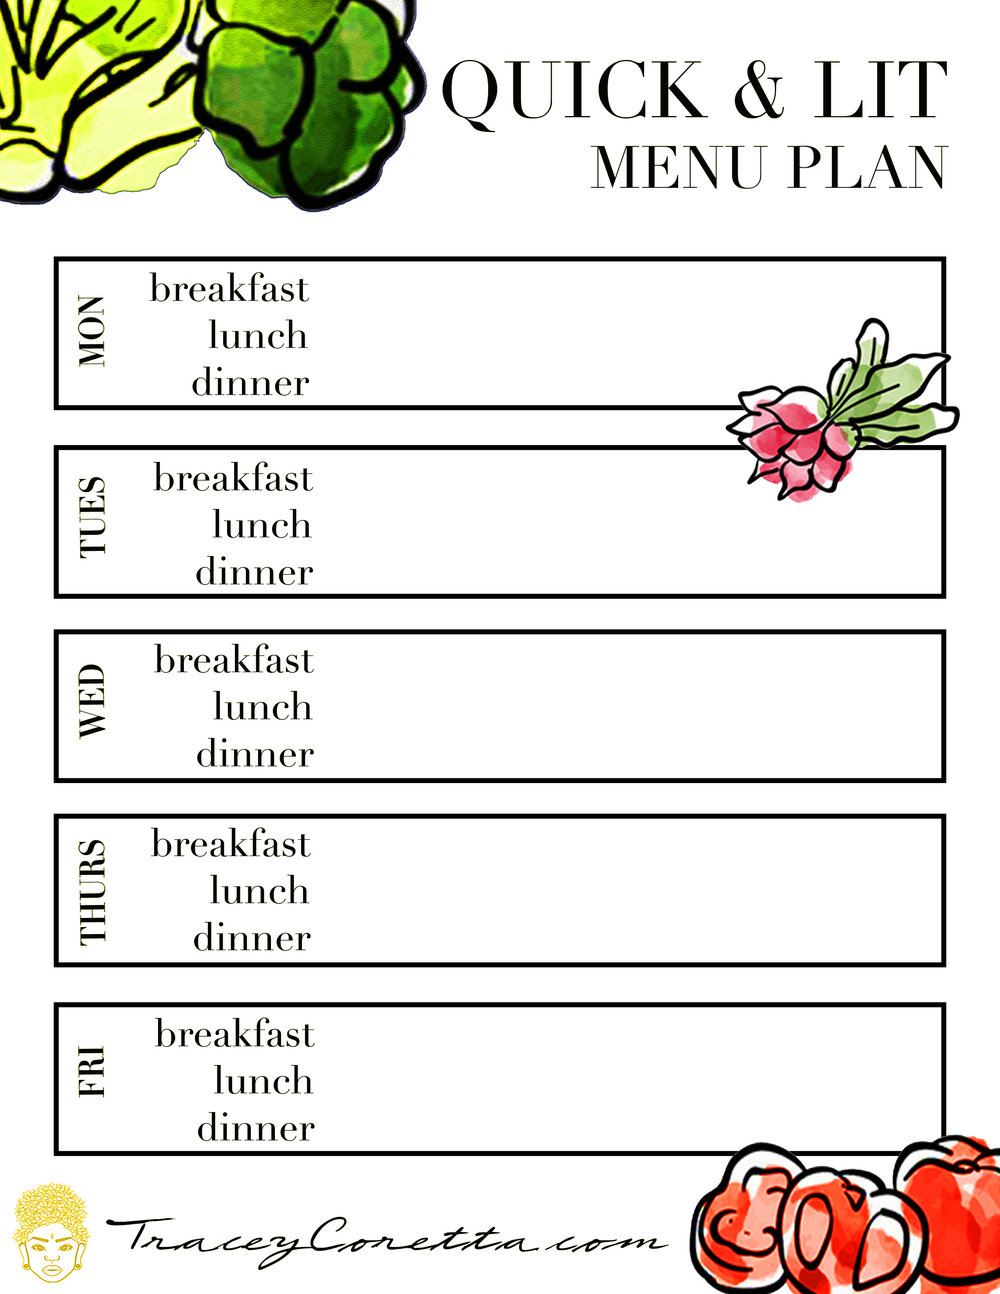 Click On The Image To Open Up The Week Day Template And A Few Of My  Favorite Recipes.  Menu For The Week Template